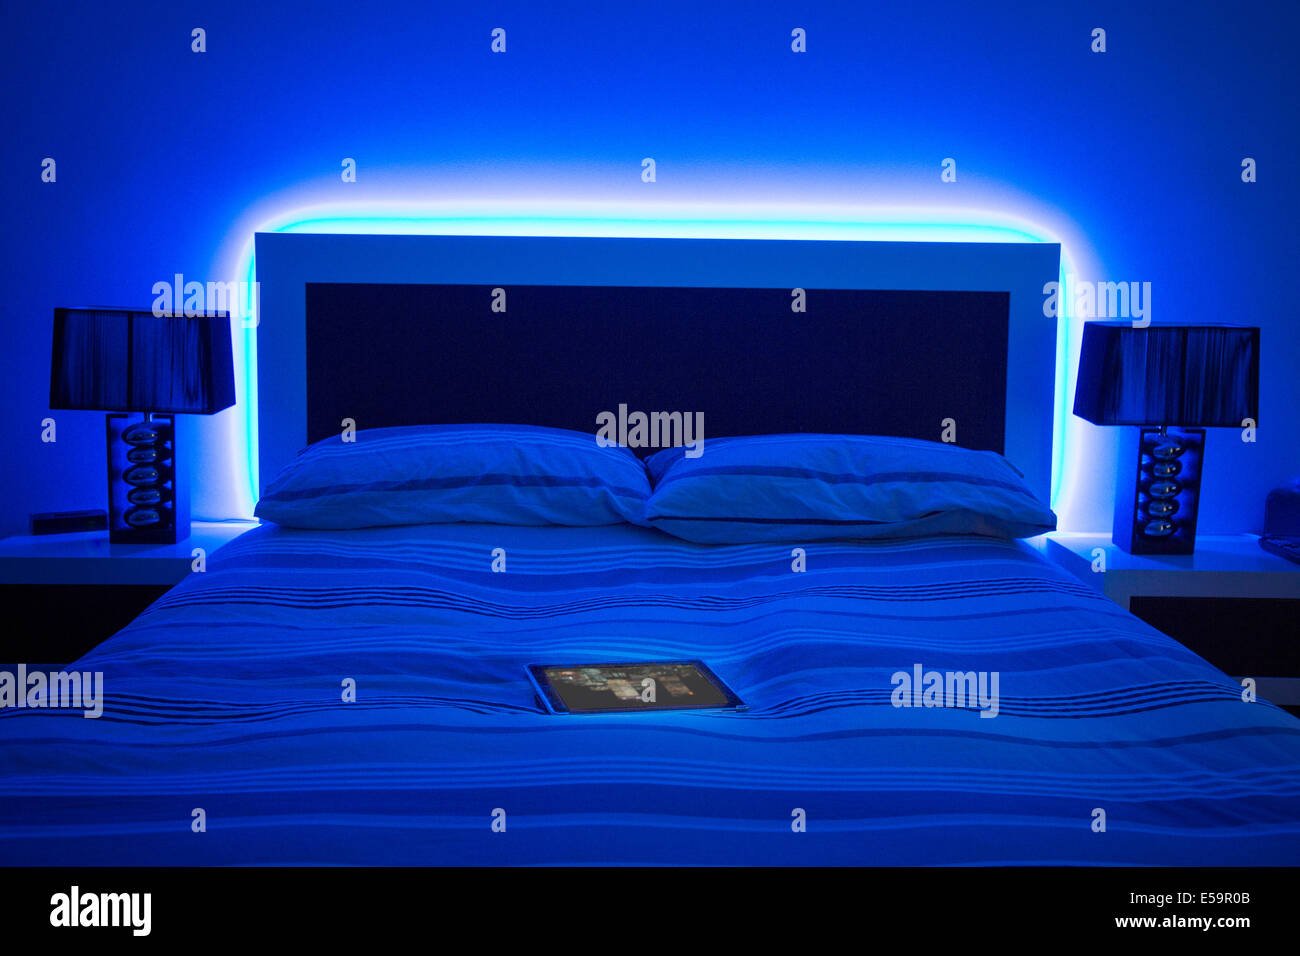 digital tablet on glowing bed - Stock Image